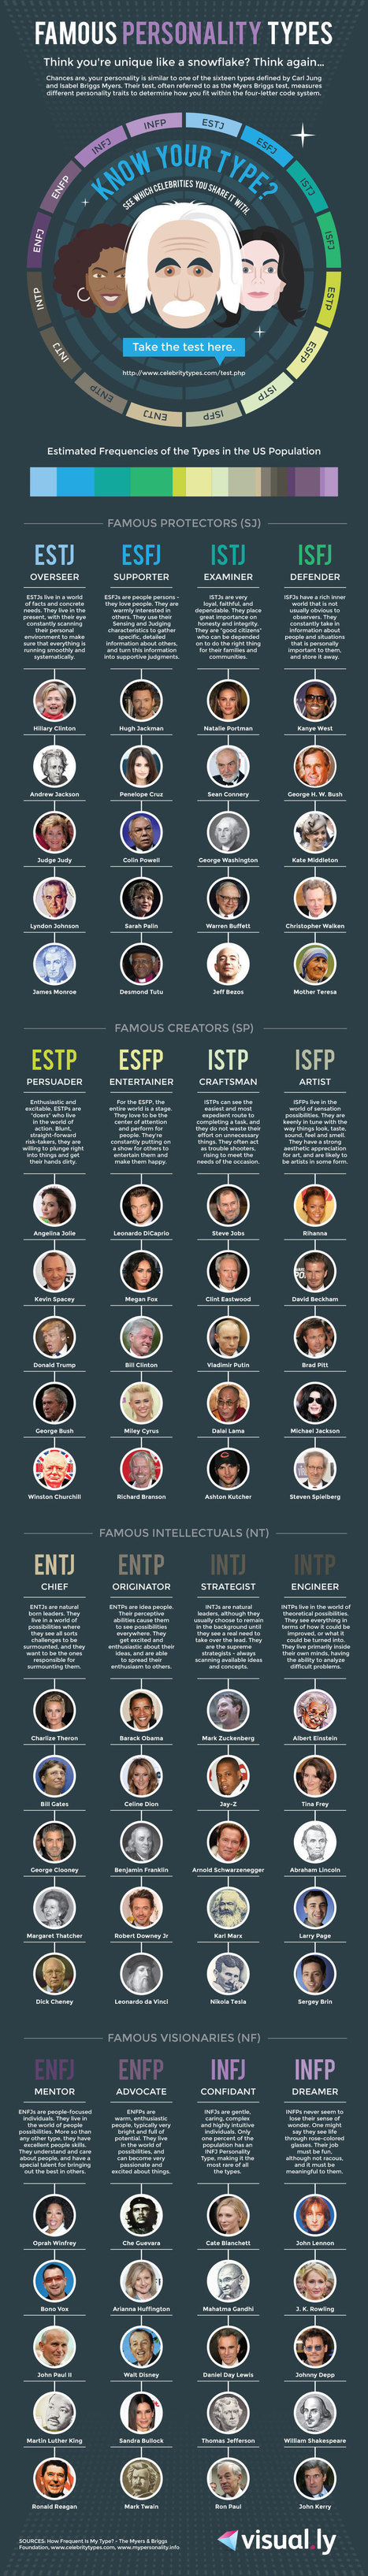 Famous Personality Types | networking people and companies | Scoop.it